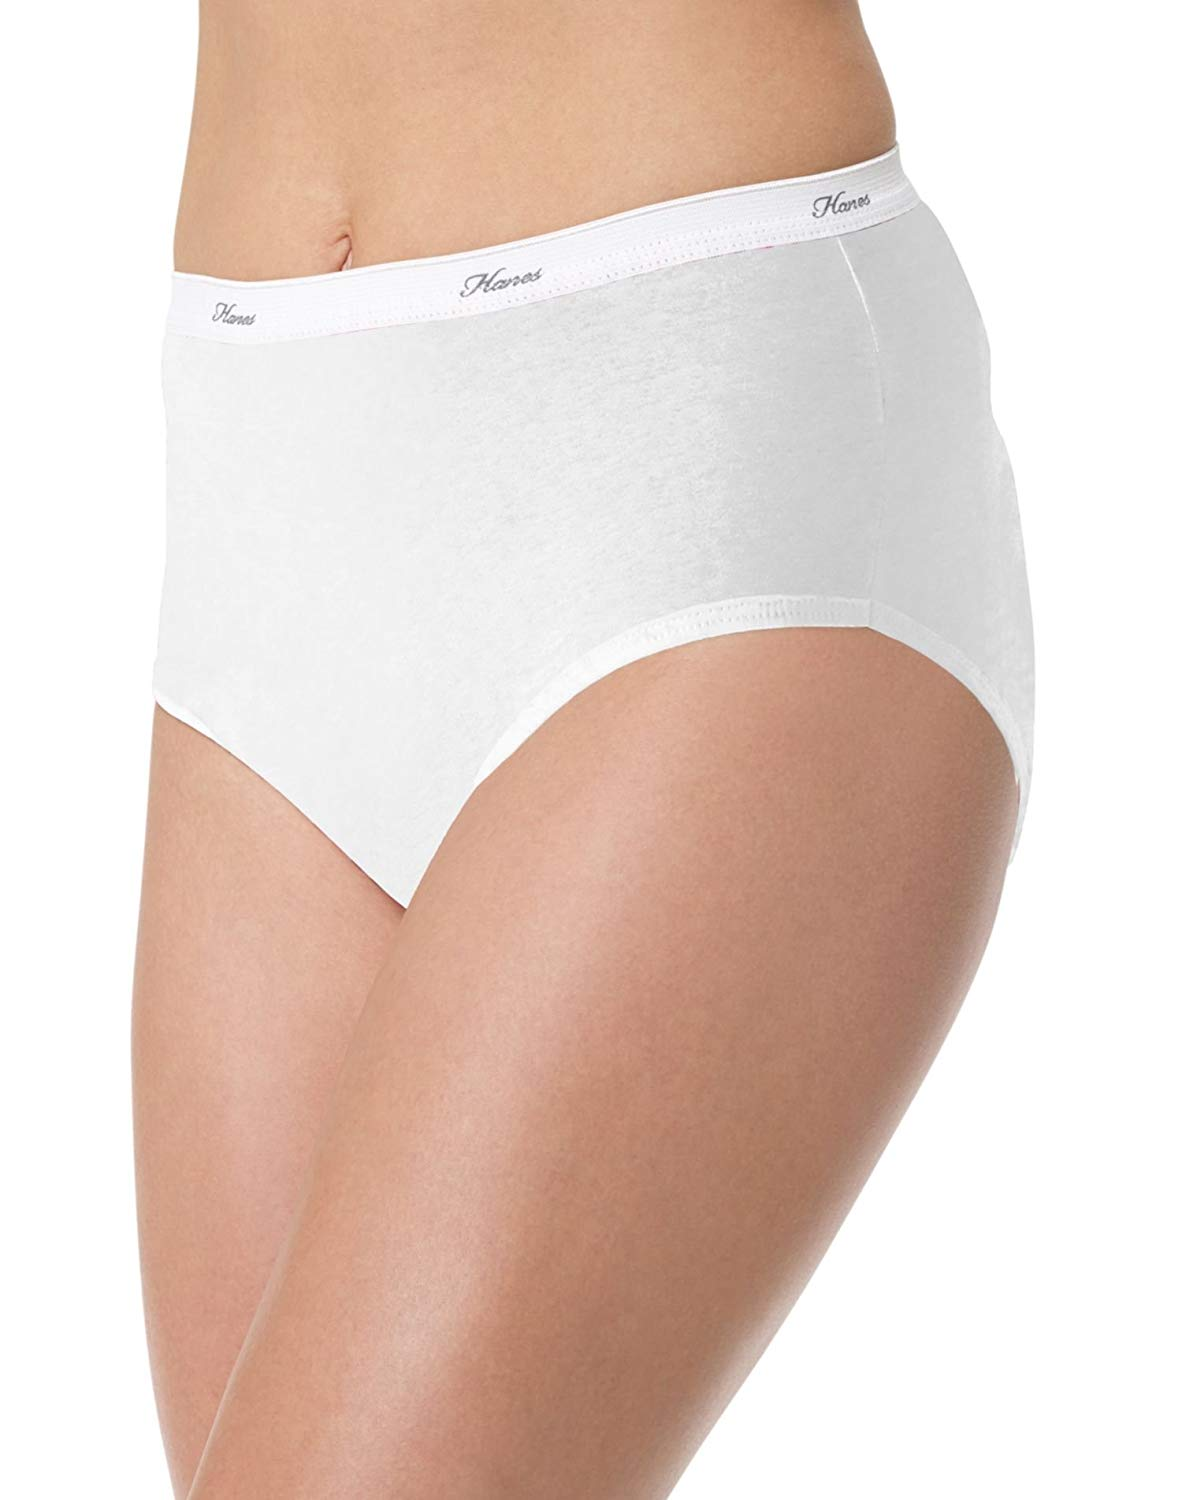 9a53b67547a0 Get Quotations · Hanes Women`s No Ride Up Cotton Panties 6-Pack -  Best-Seller